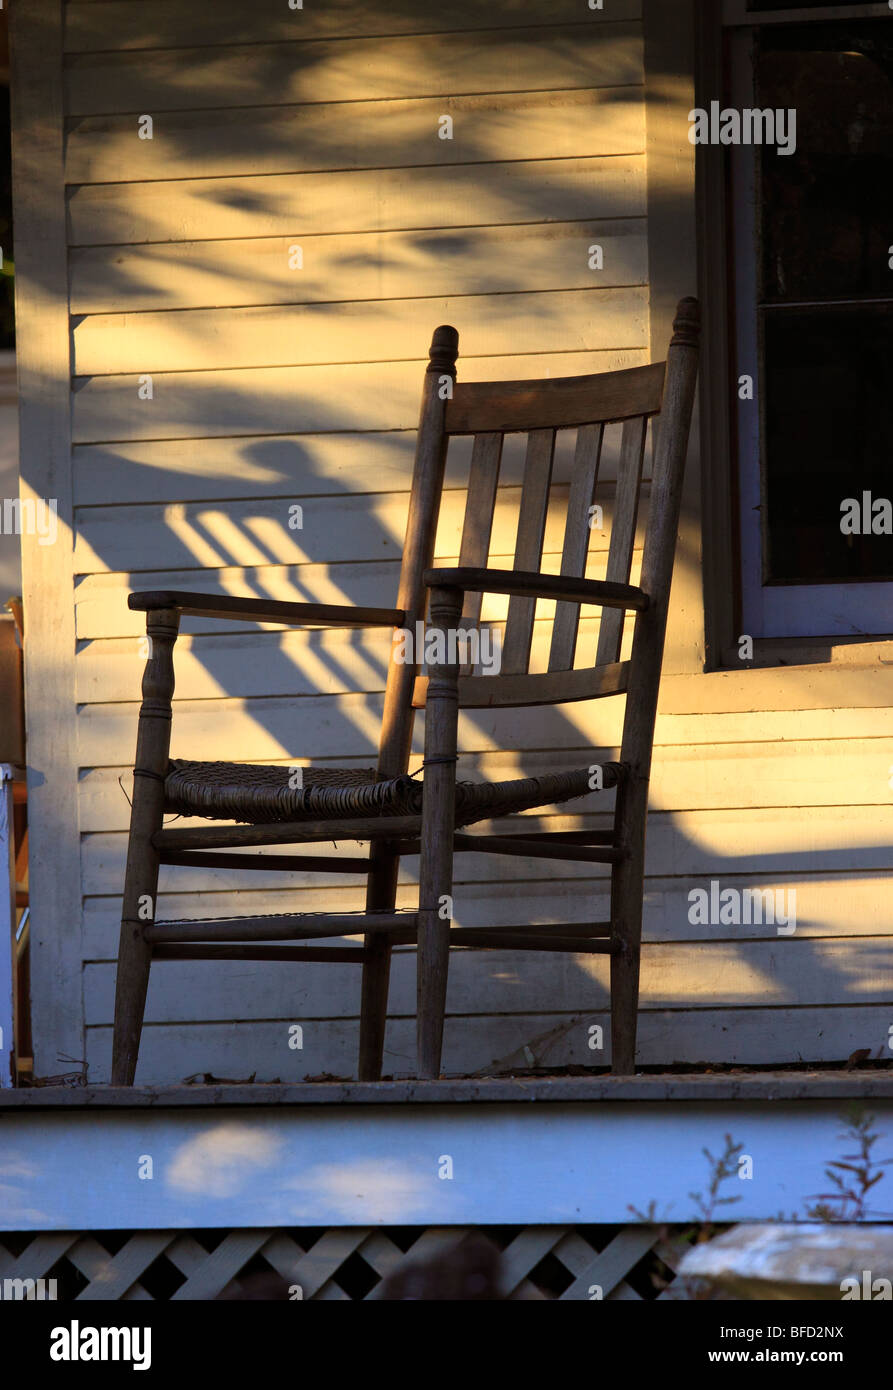 Chair on porch, Long Island, NY - Stock Image